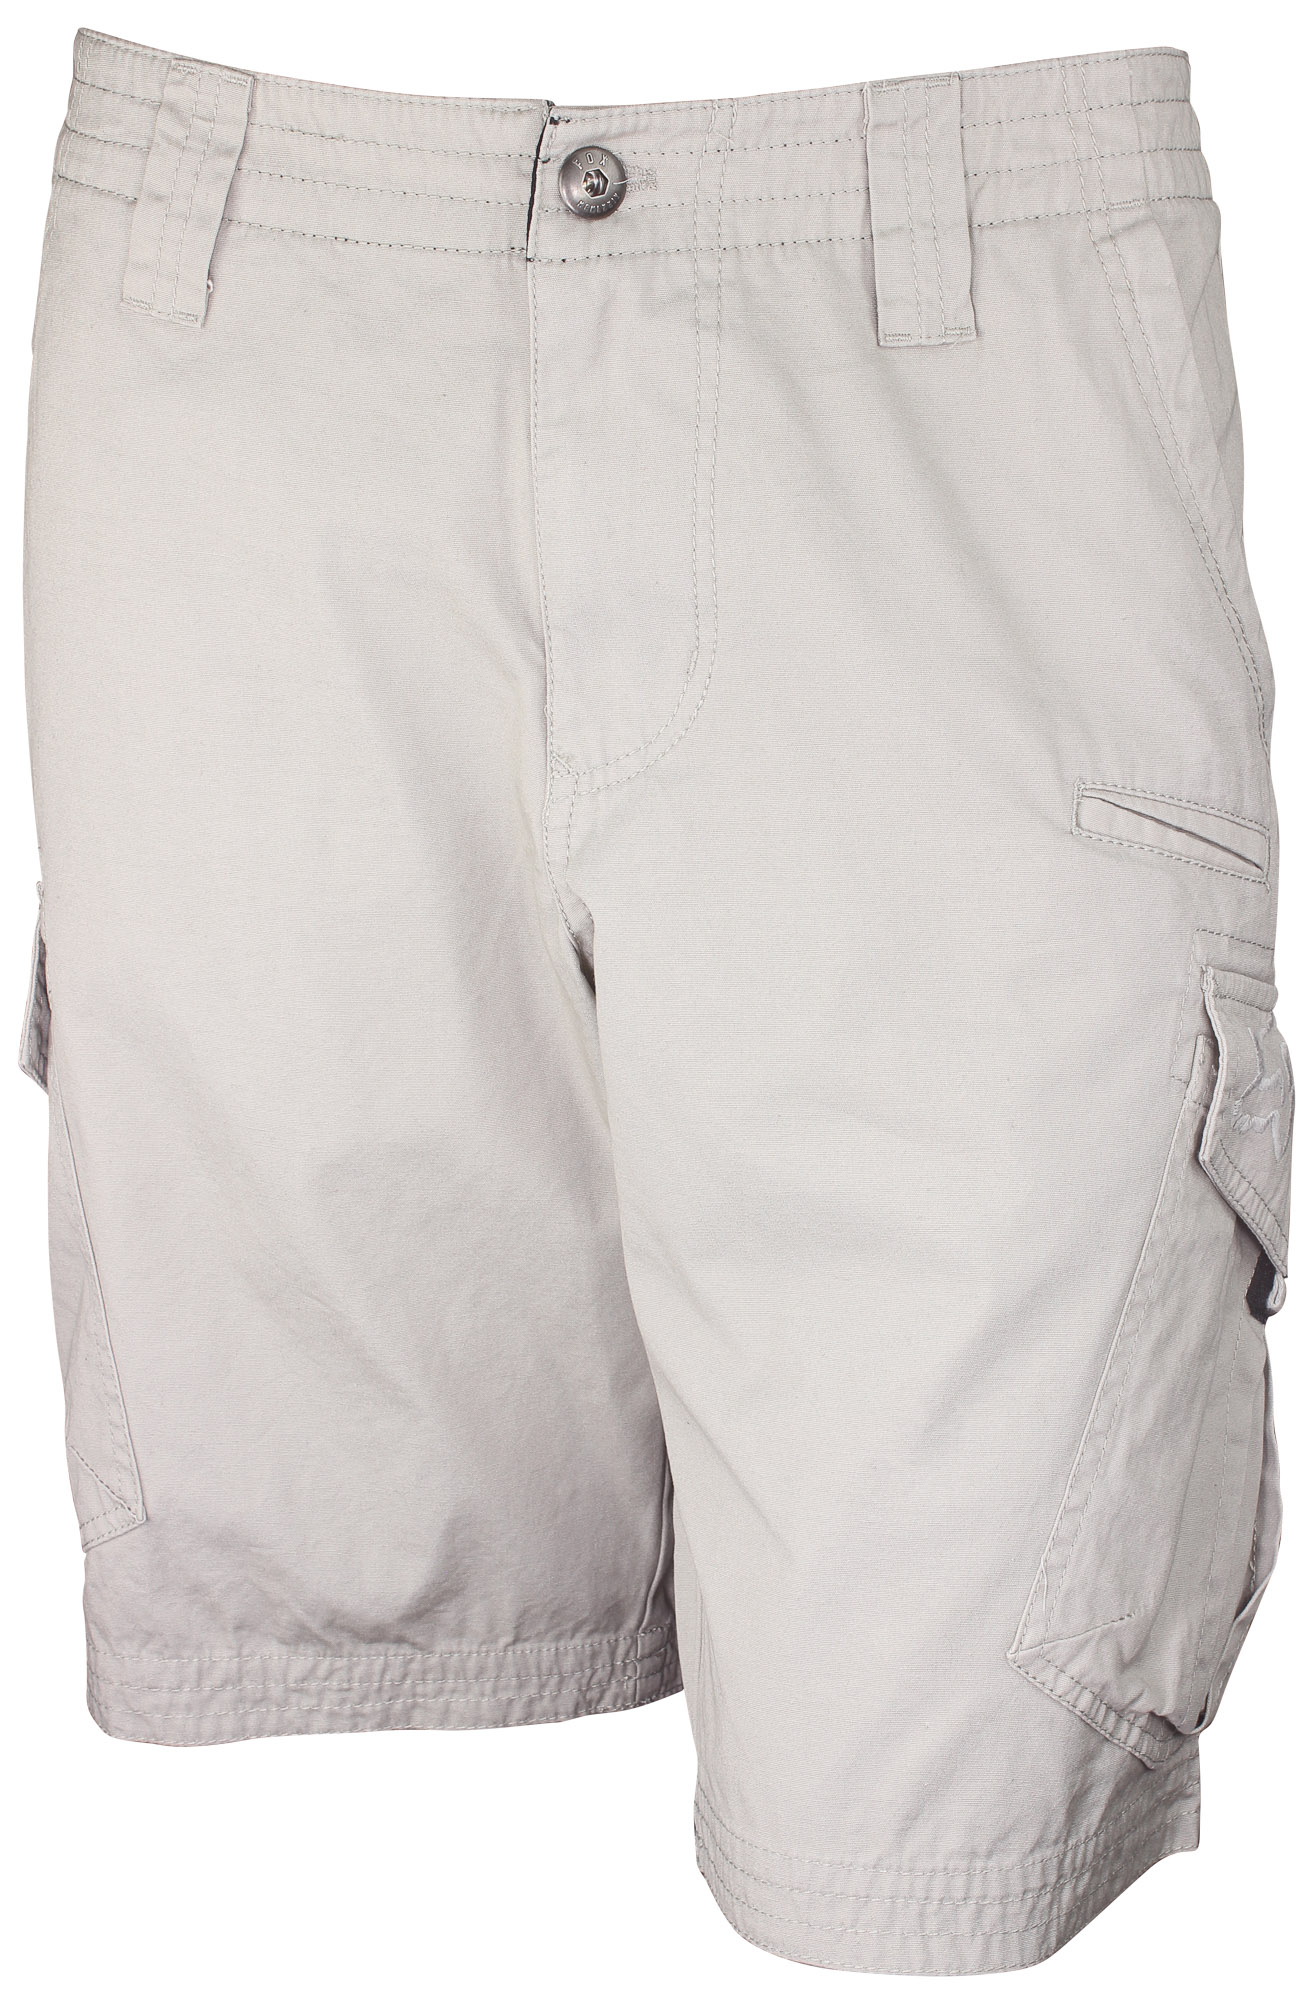 faf25bb372 Image is loading Fox-Racing-Mens-Slambozo-Casual-Cargo-Shorts-Stone-